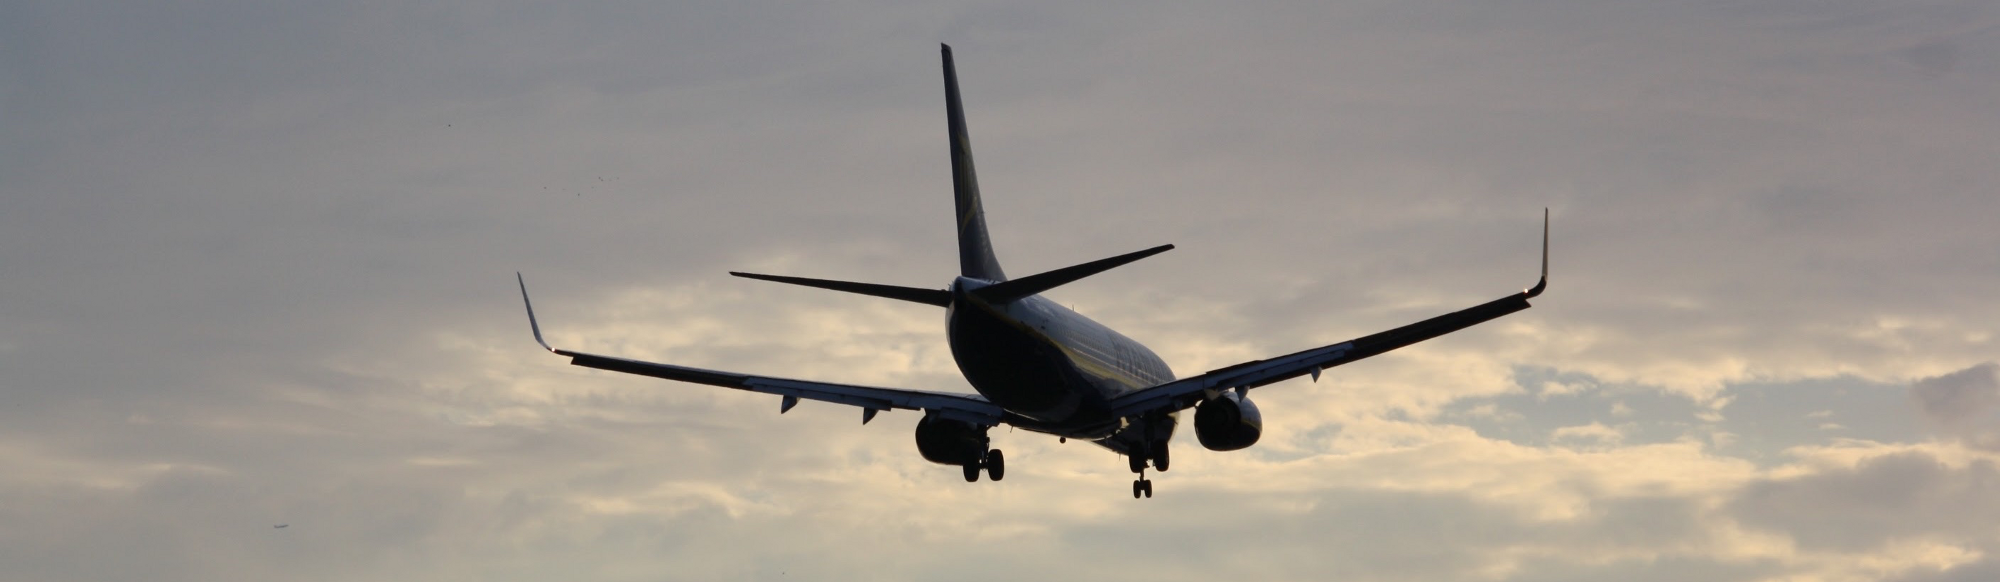 Flights are also generally a lot cheaper right after a holiday. An old  friend told me he was able to book a roundtrip flight from LAX to Dublin,  ...